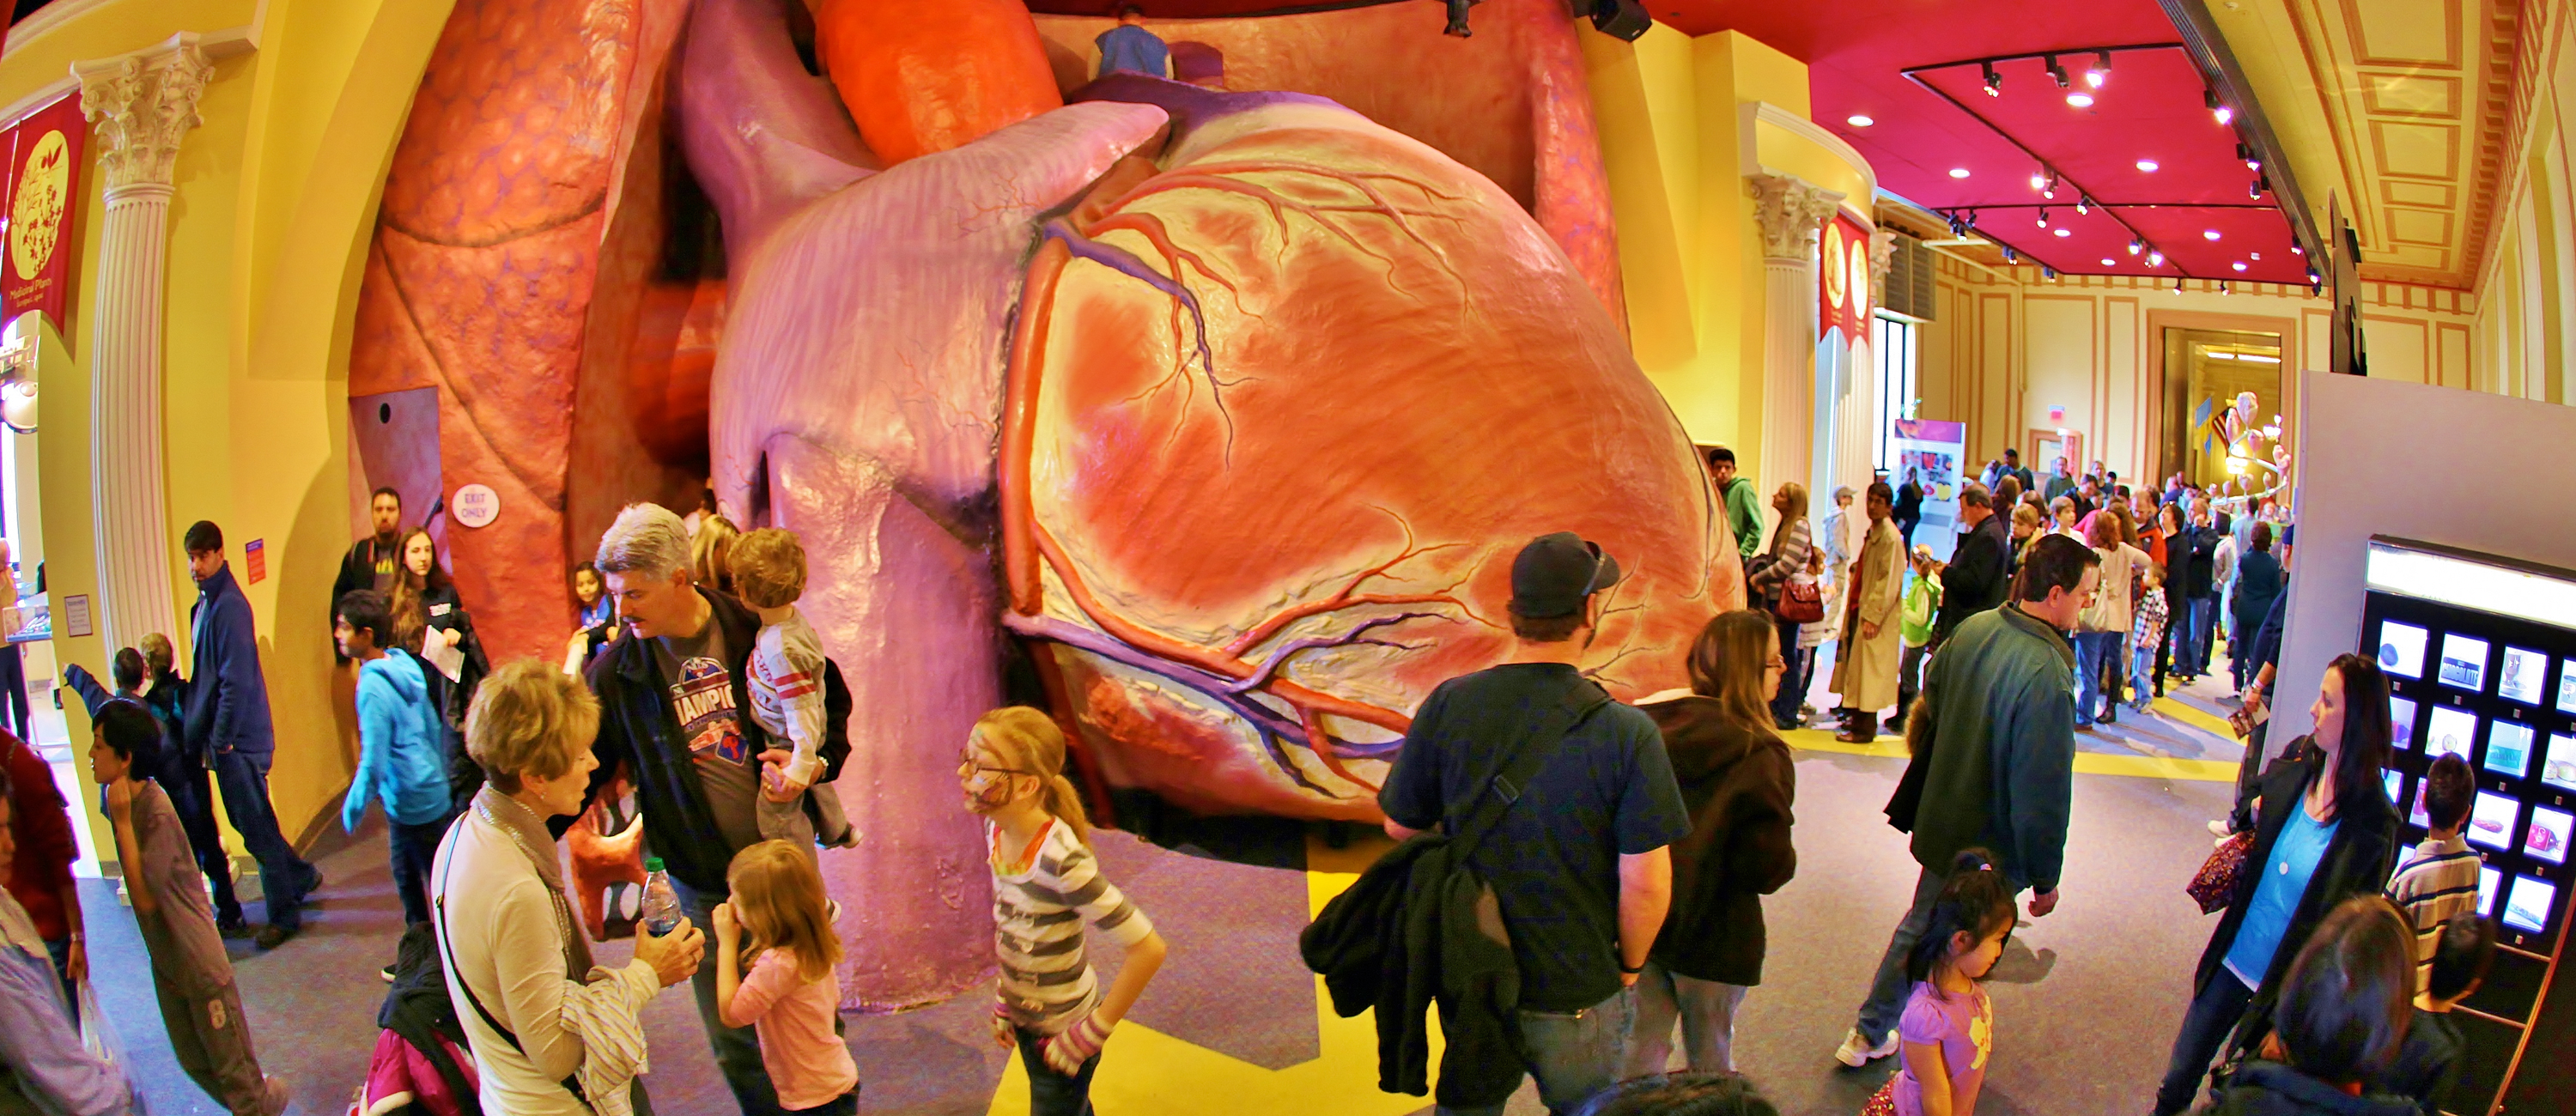 The Giant Heart The Franklin Institute Science Museum : HeroExhibitGiantHeart3 from www.fi.edu size 3000 x 1300 jpeg 2975kB